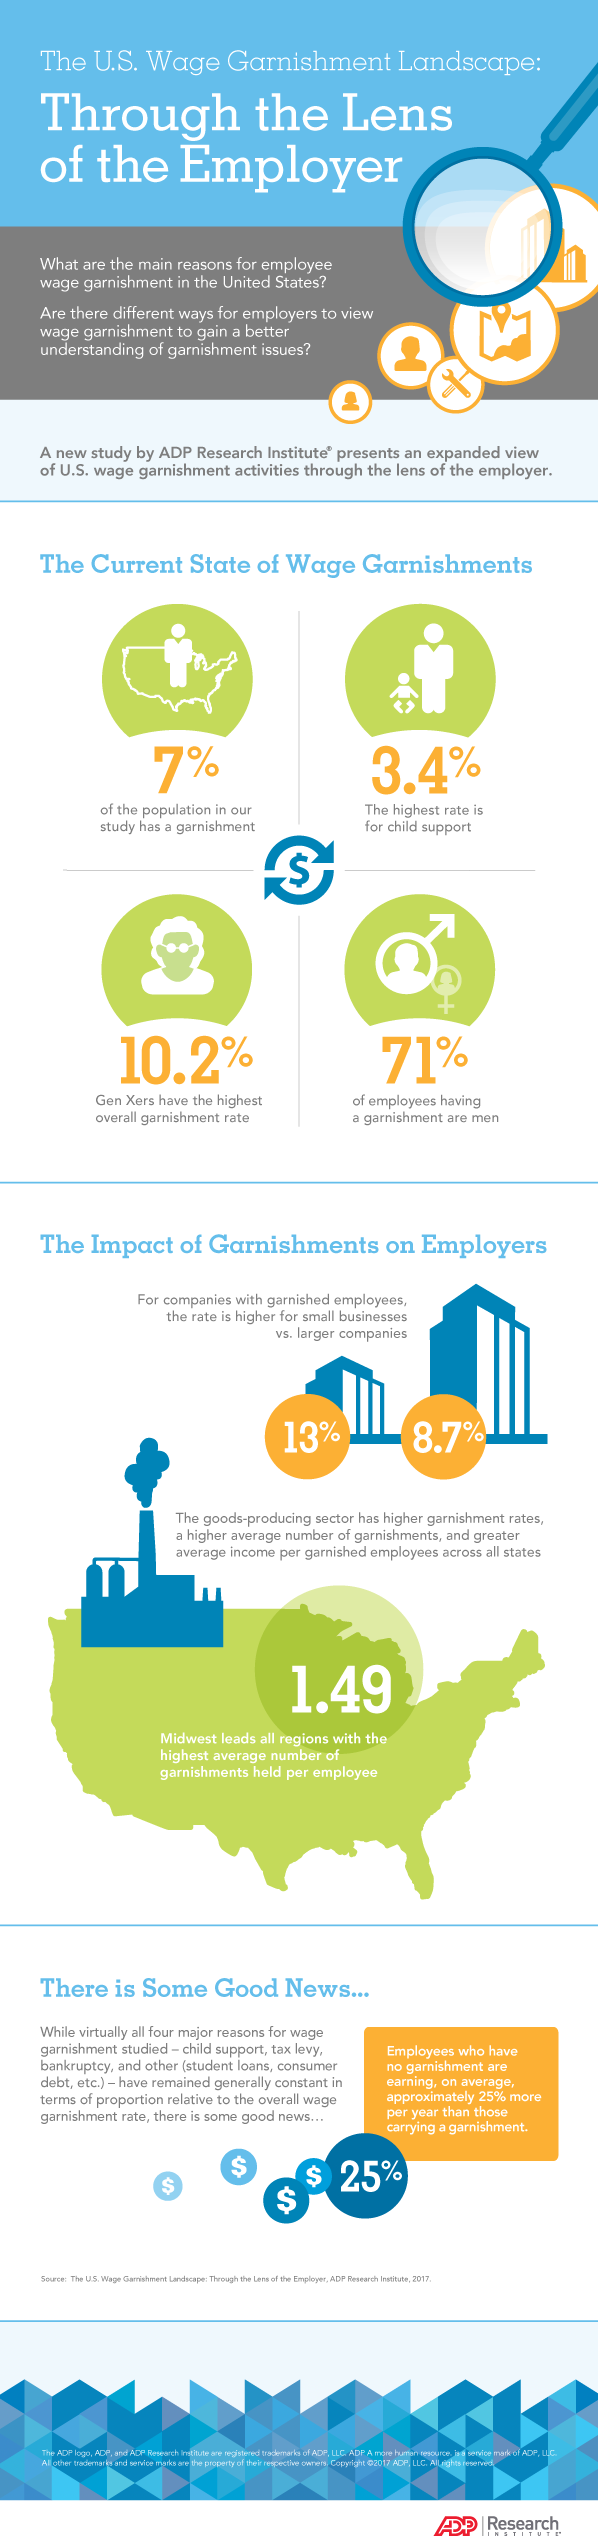 Infographic:  The U.S. Wage Garnishment Landscape: Through the Lens of the Employer